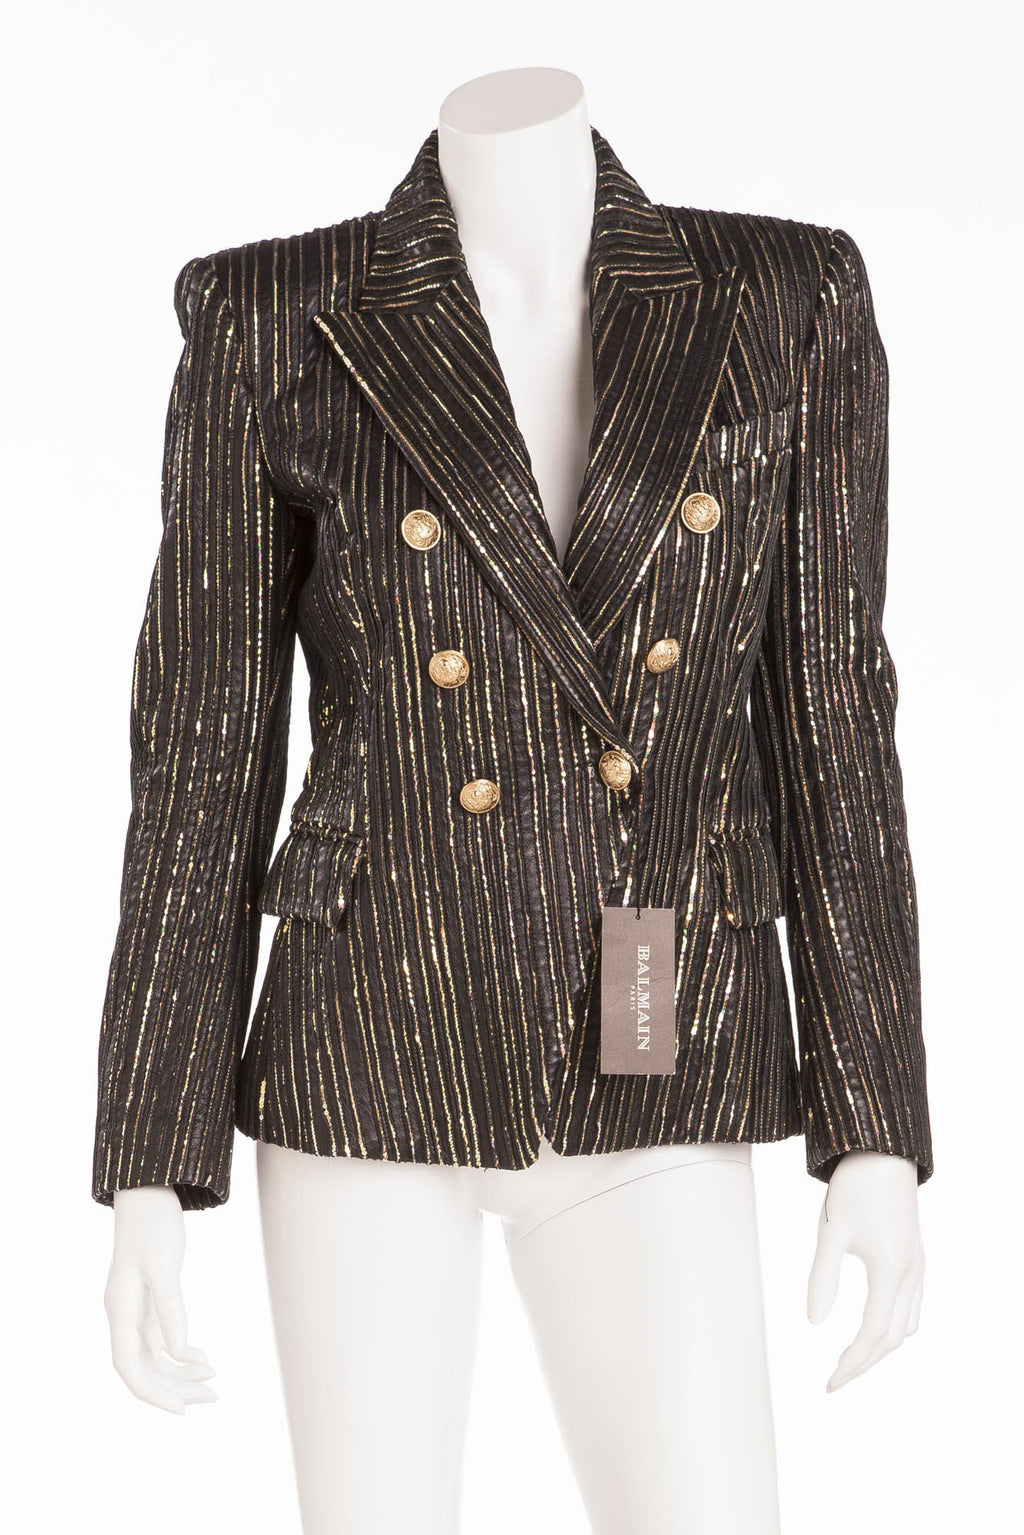 Balmain - NWT Black and Gold Leather Blazer Gold Buttons - FR 40